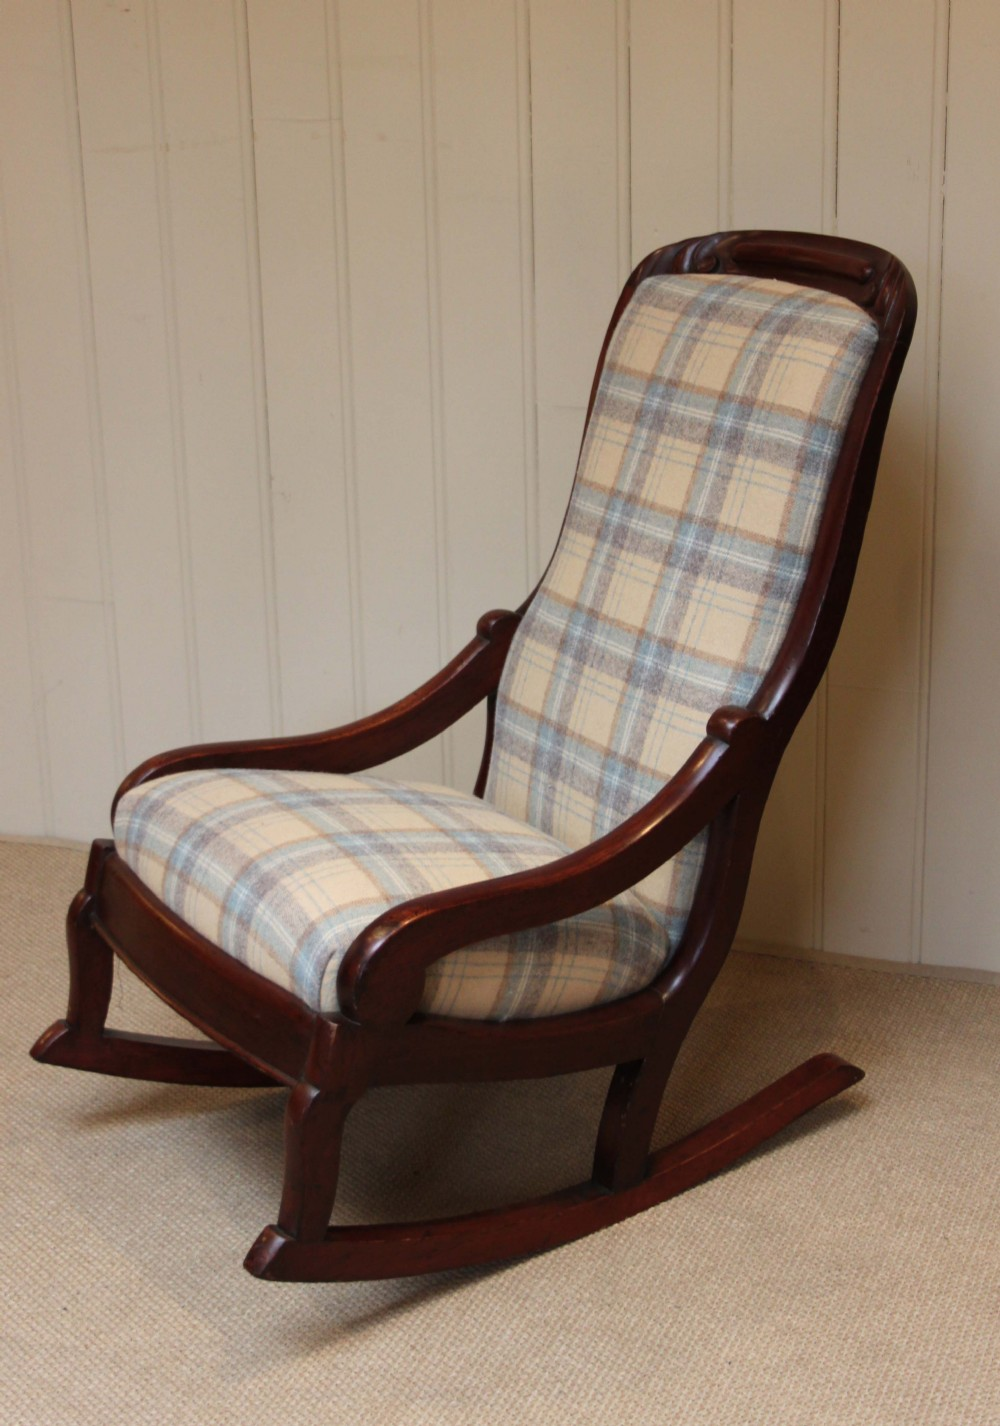 Late Victorian Upholstered Rocking Chair